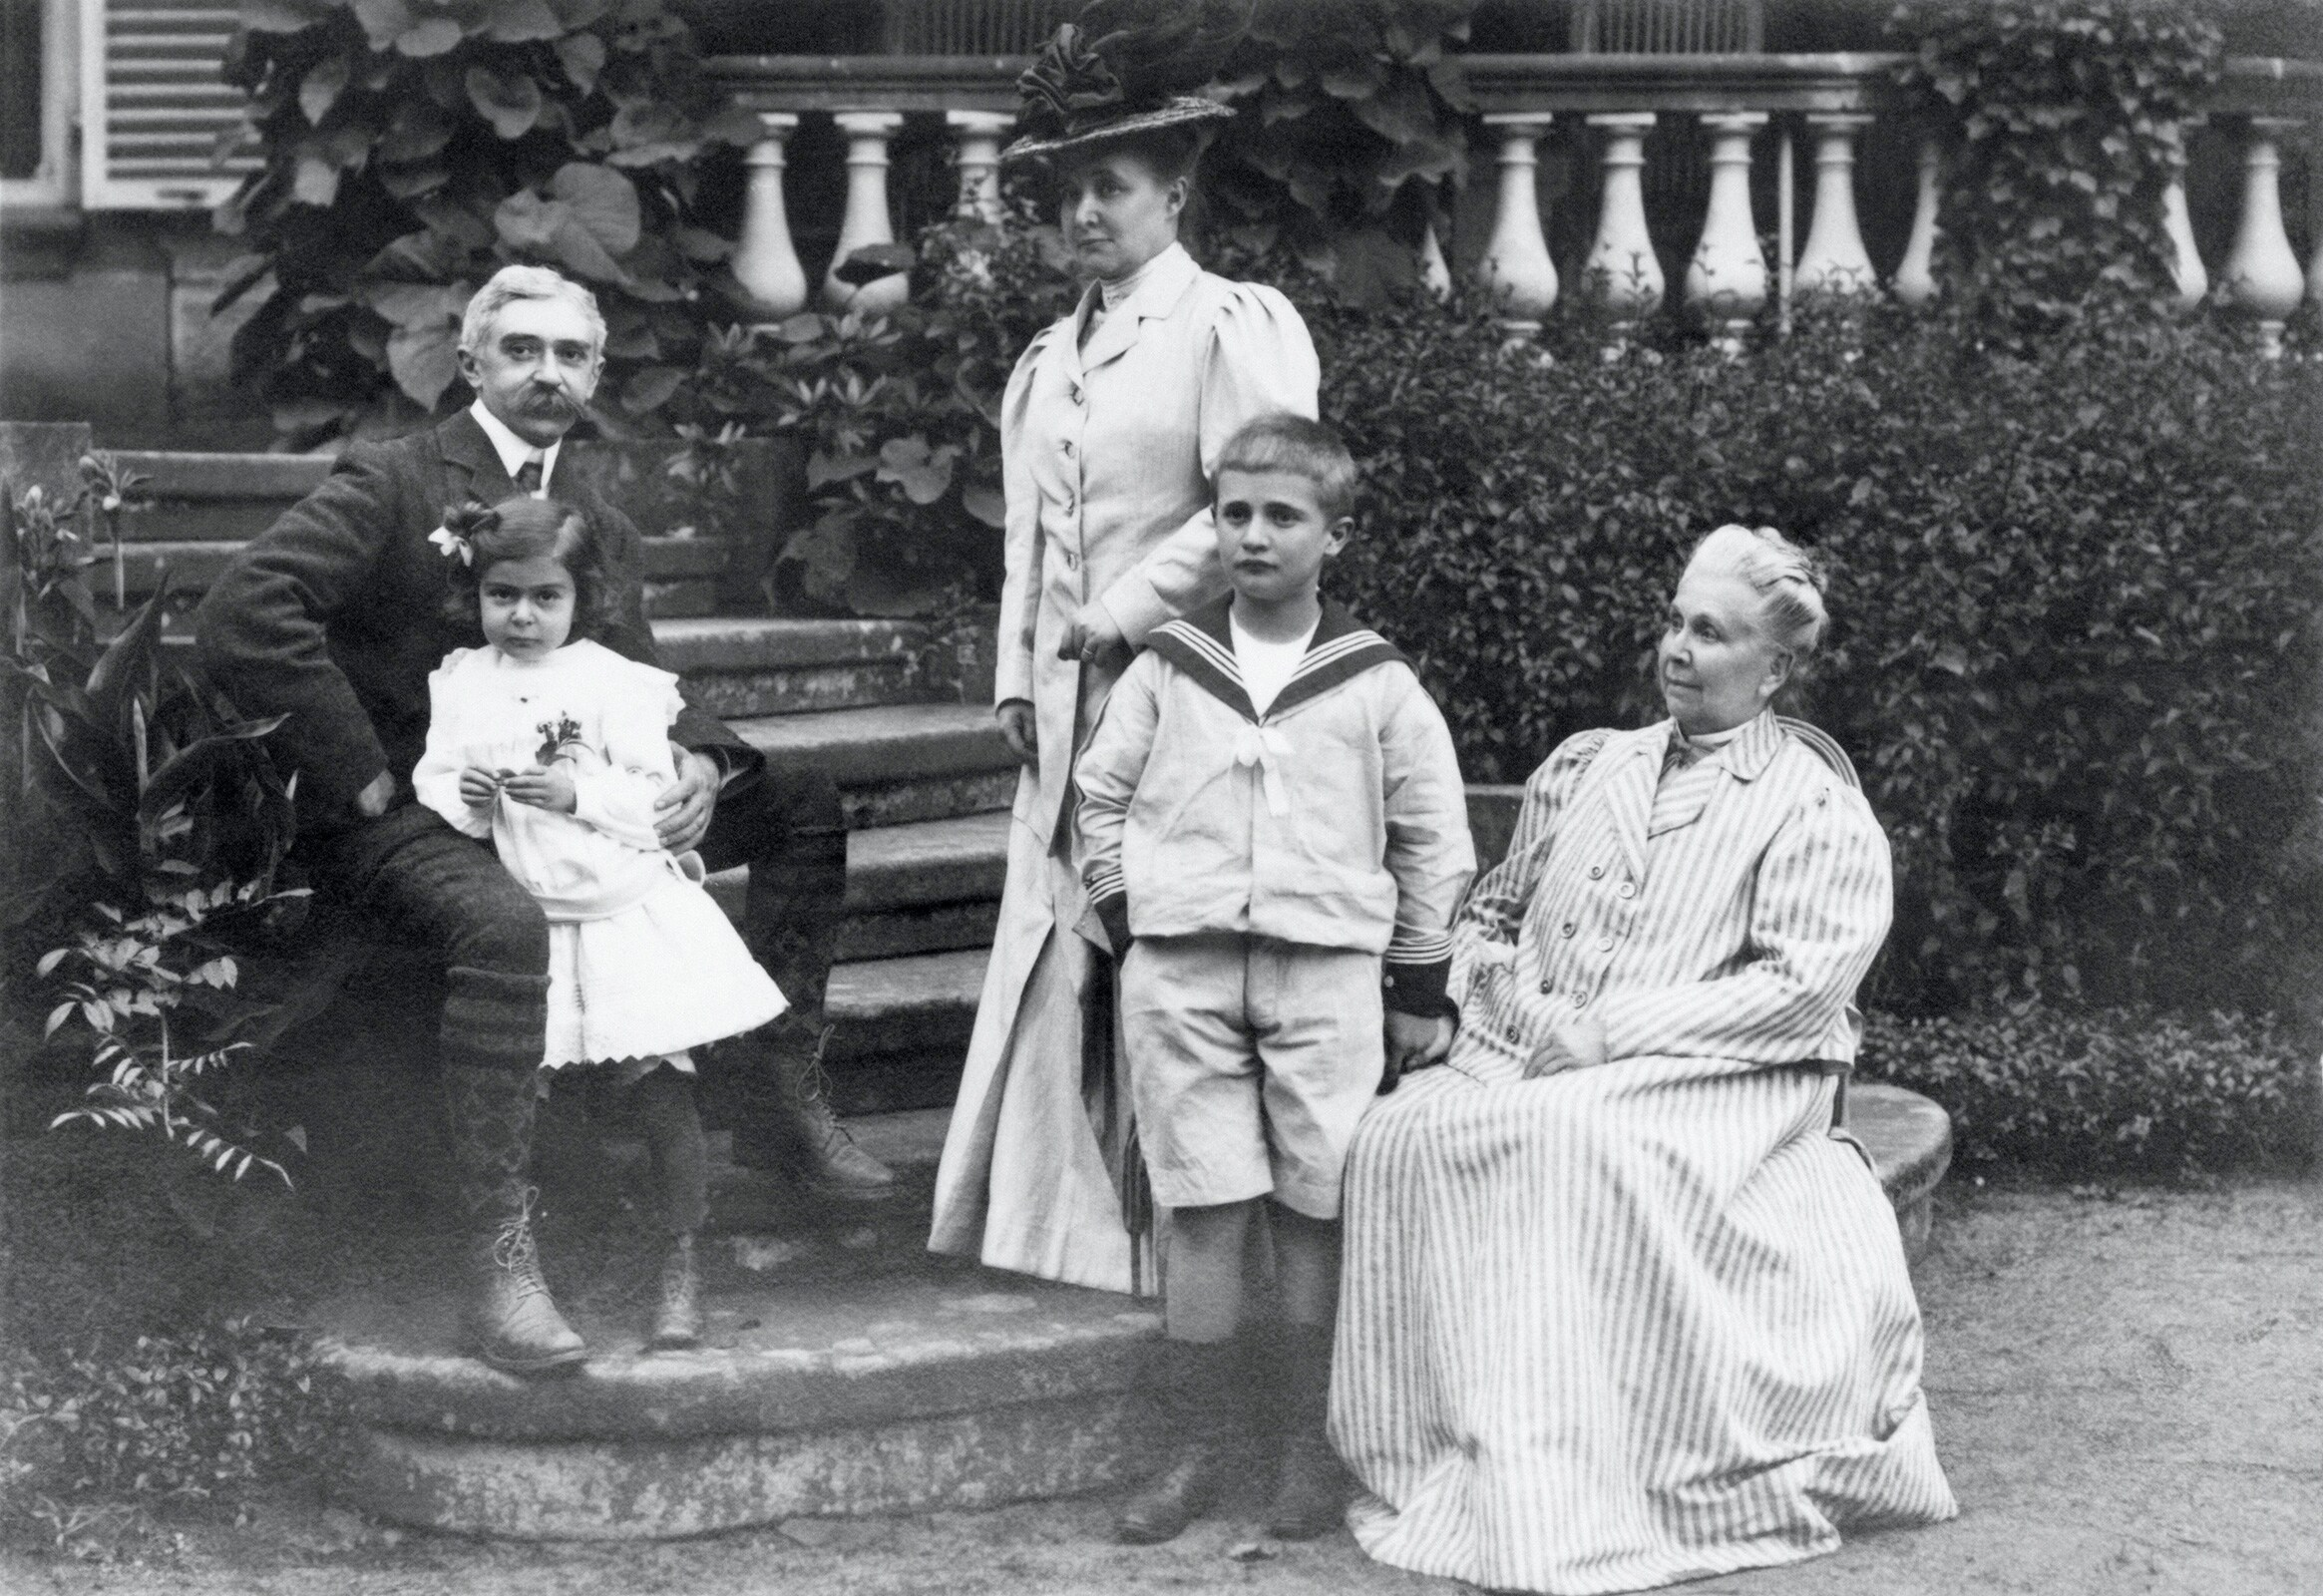 Family Photograph - Baron Pierre de COUBERTIN, his wife Marie ROTHAN, Baronness de COUBERTIN, his mother-in-law  Mrs. Rothan and their children : Renée and Jacques de COUBERTIN